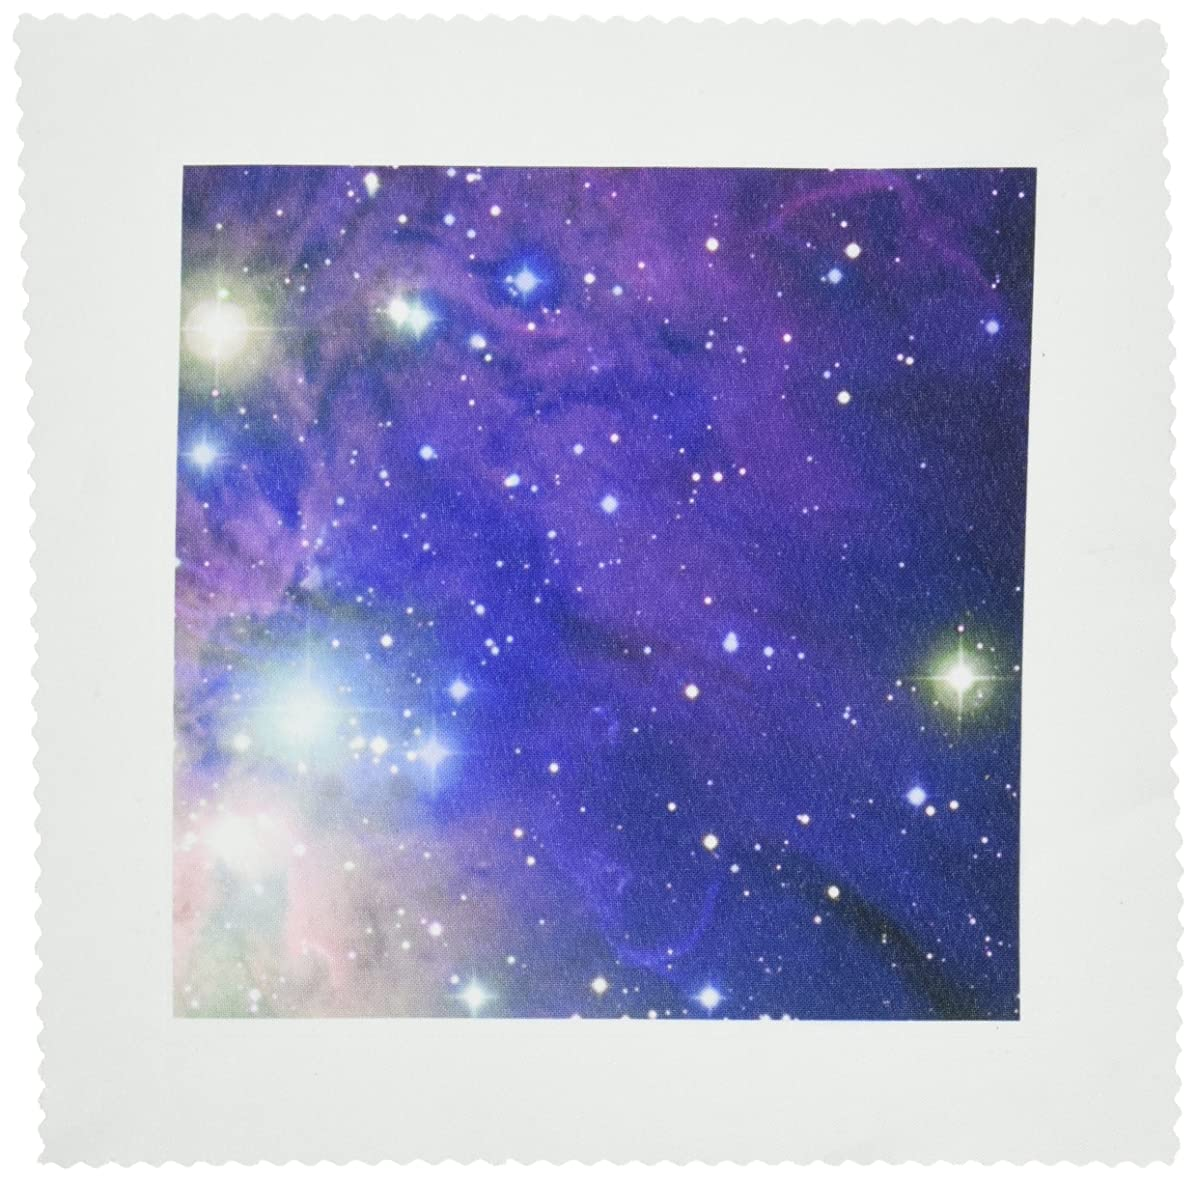 3dRose qs_112992_1 Cool Outer Space Stars and Planets Dark Blue Design-Science Fiction Sci-Fi Geek Astronomy Nerd-Quilt Square, 10 by 10-Inch